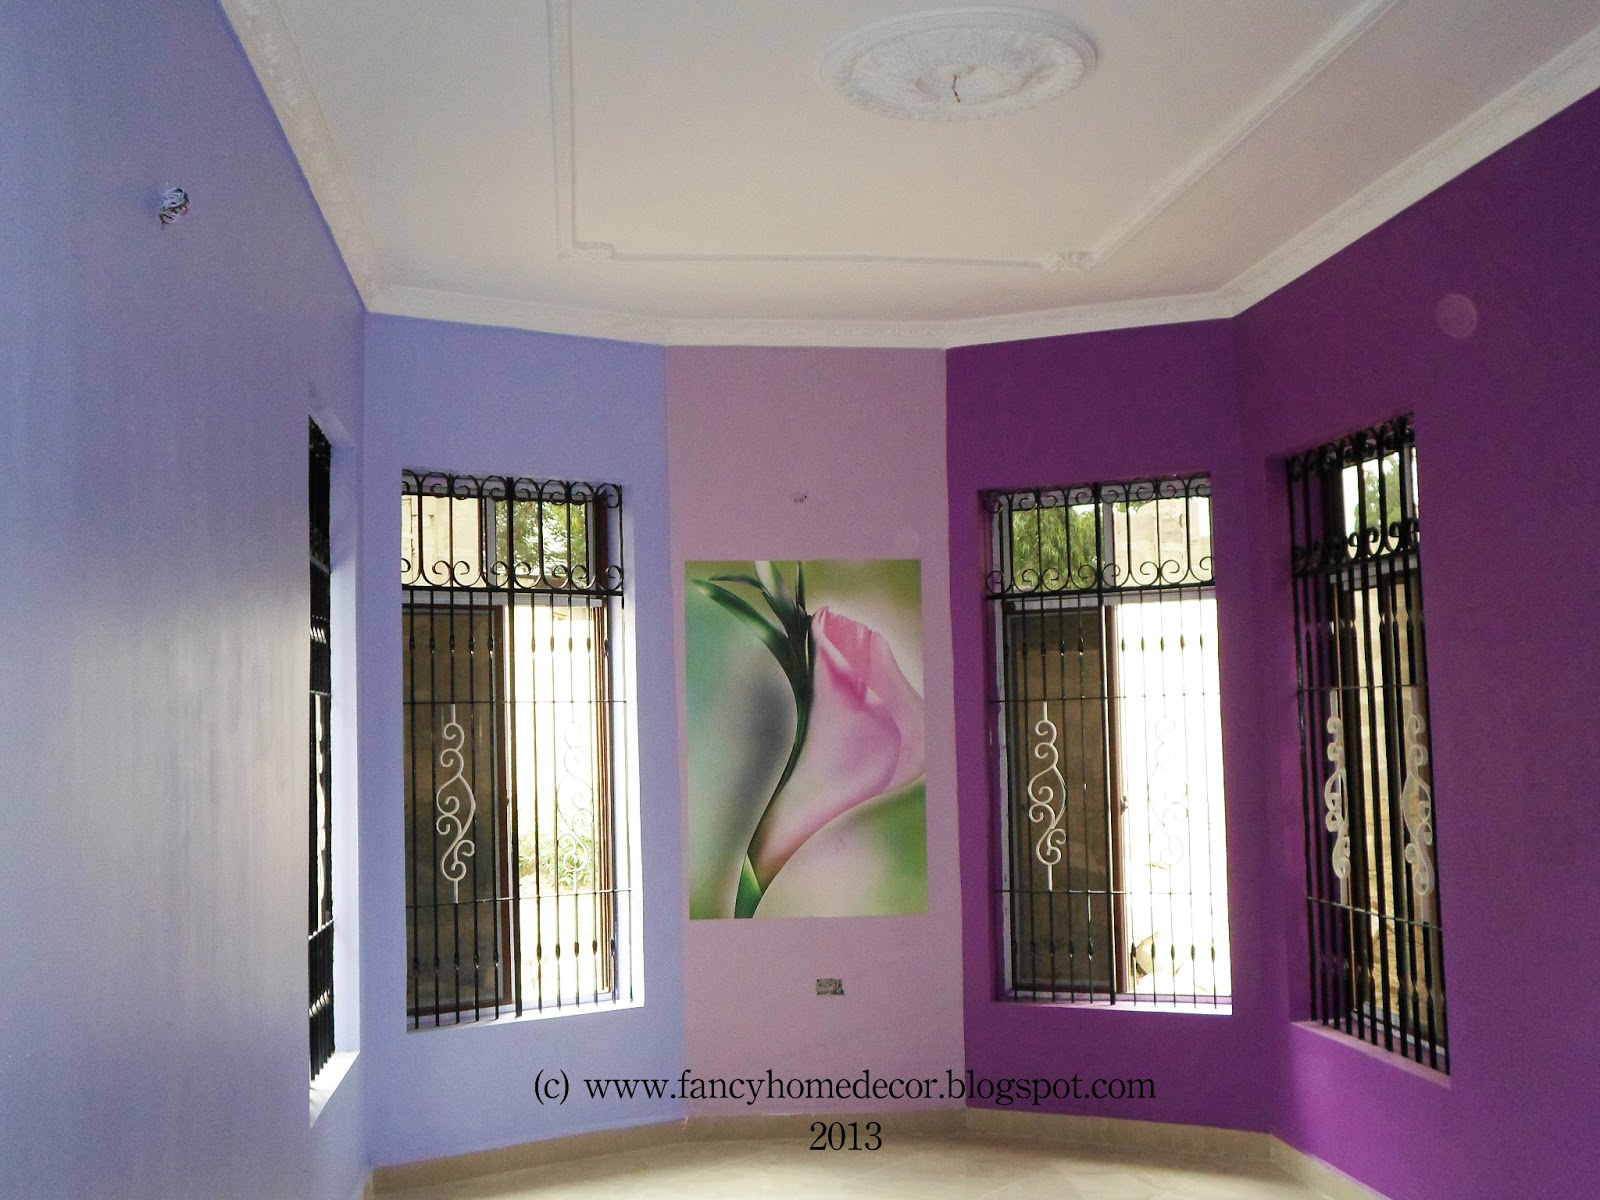 Fancy Home Decor My Project Interior Designing